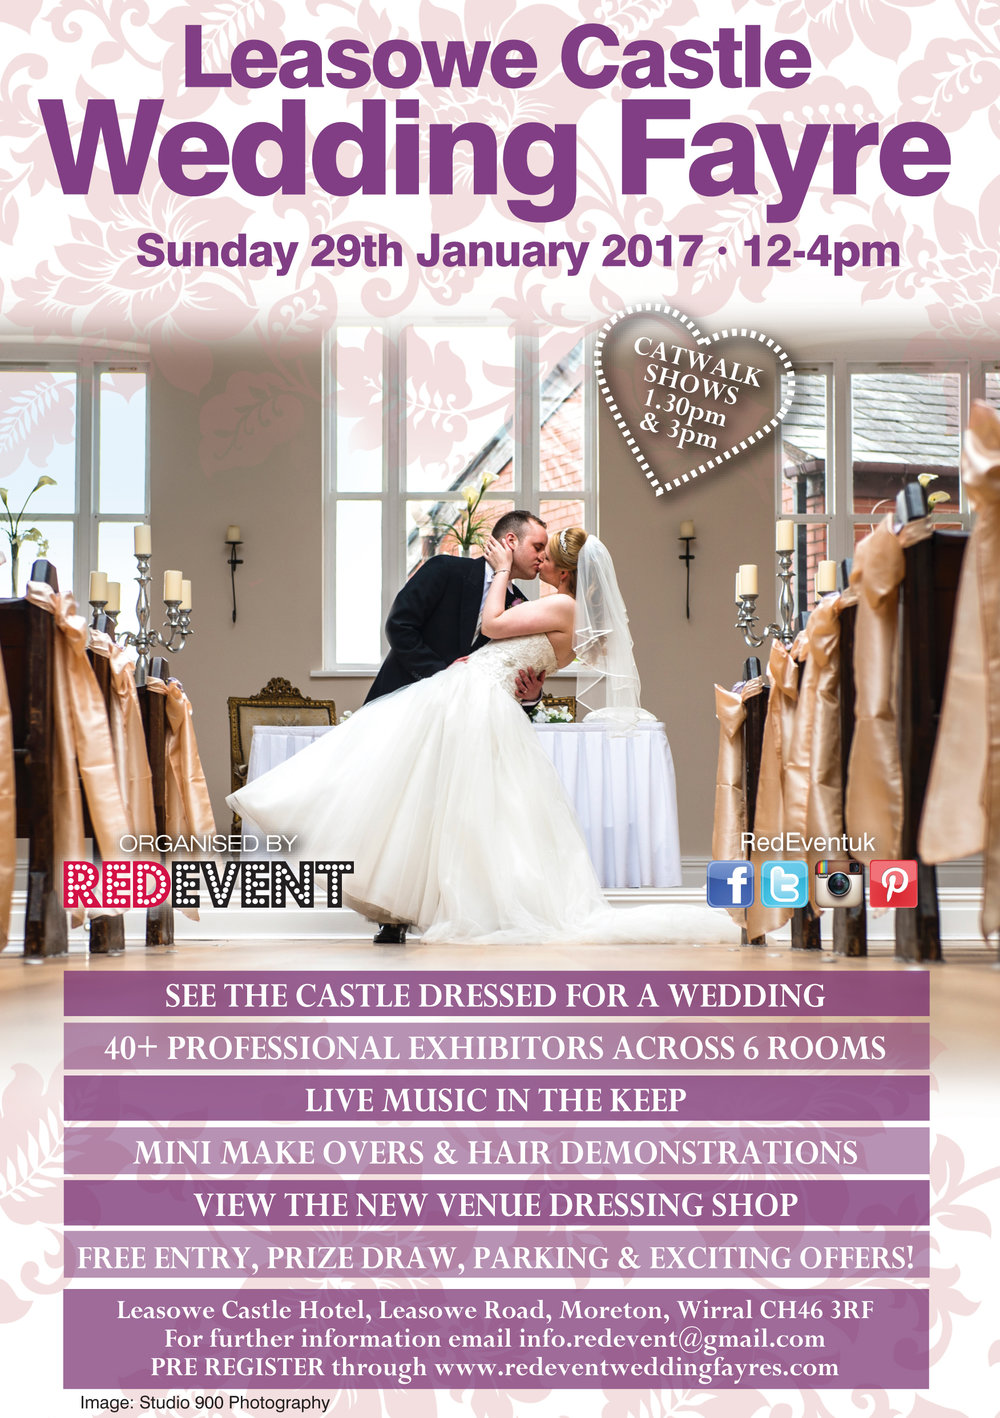 Leasowe Castle Wedding Fayre www.redeventweddingfayres.com